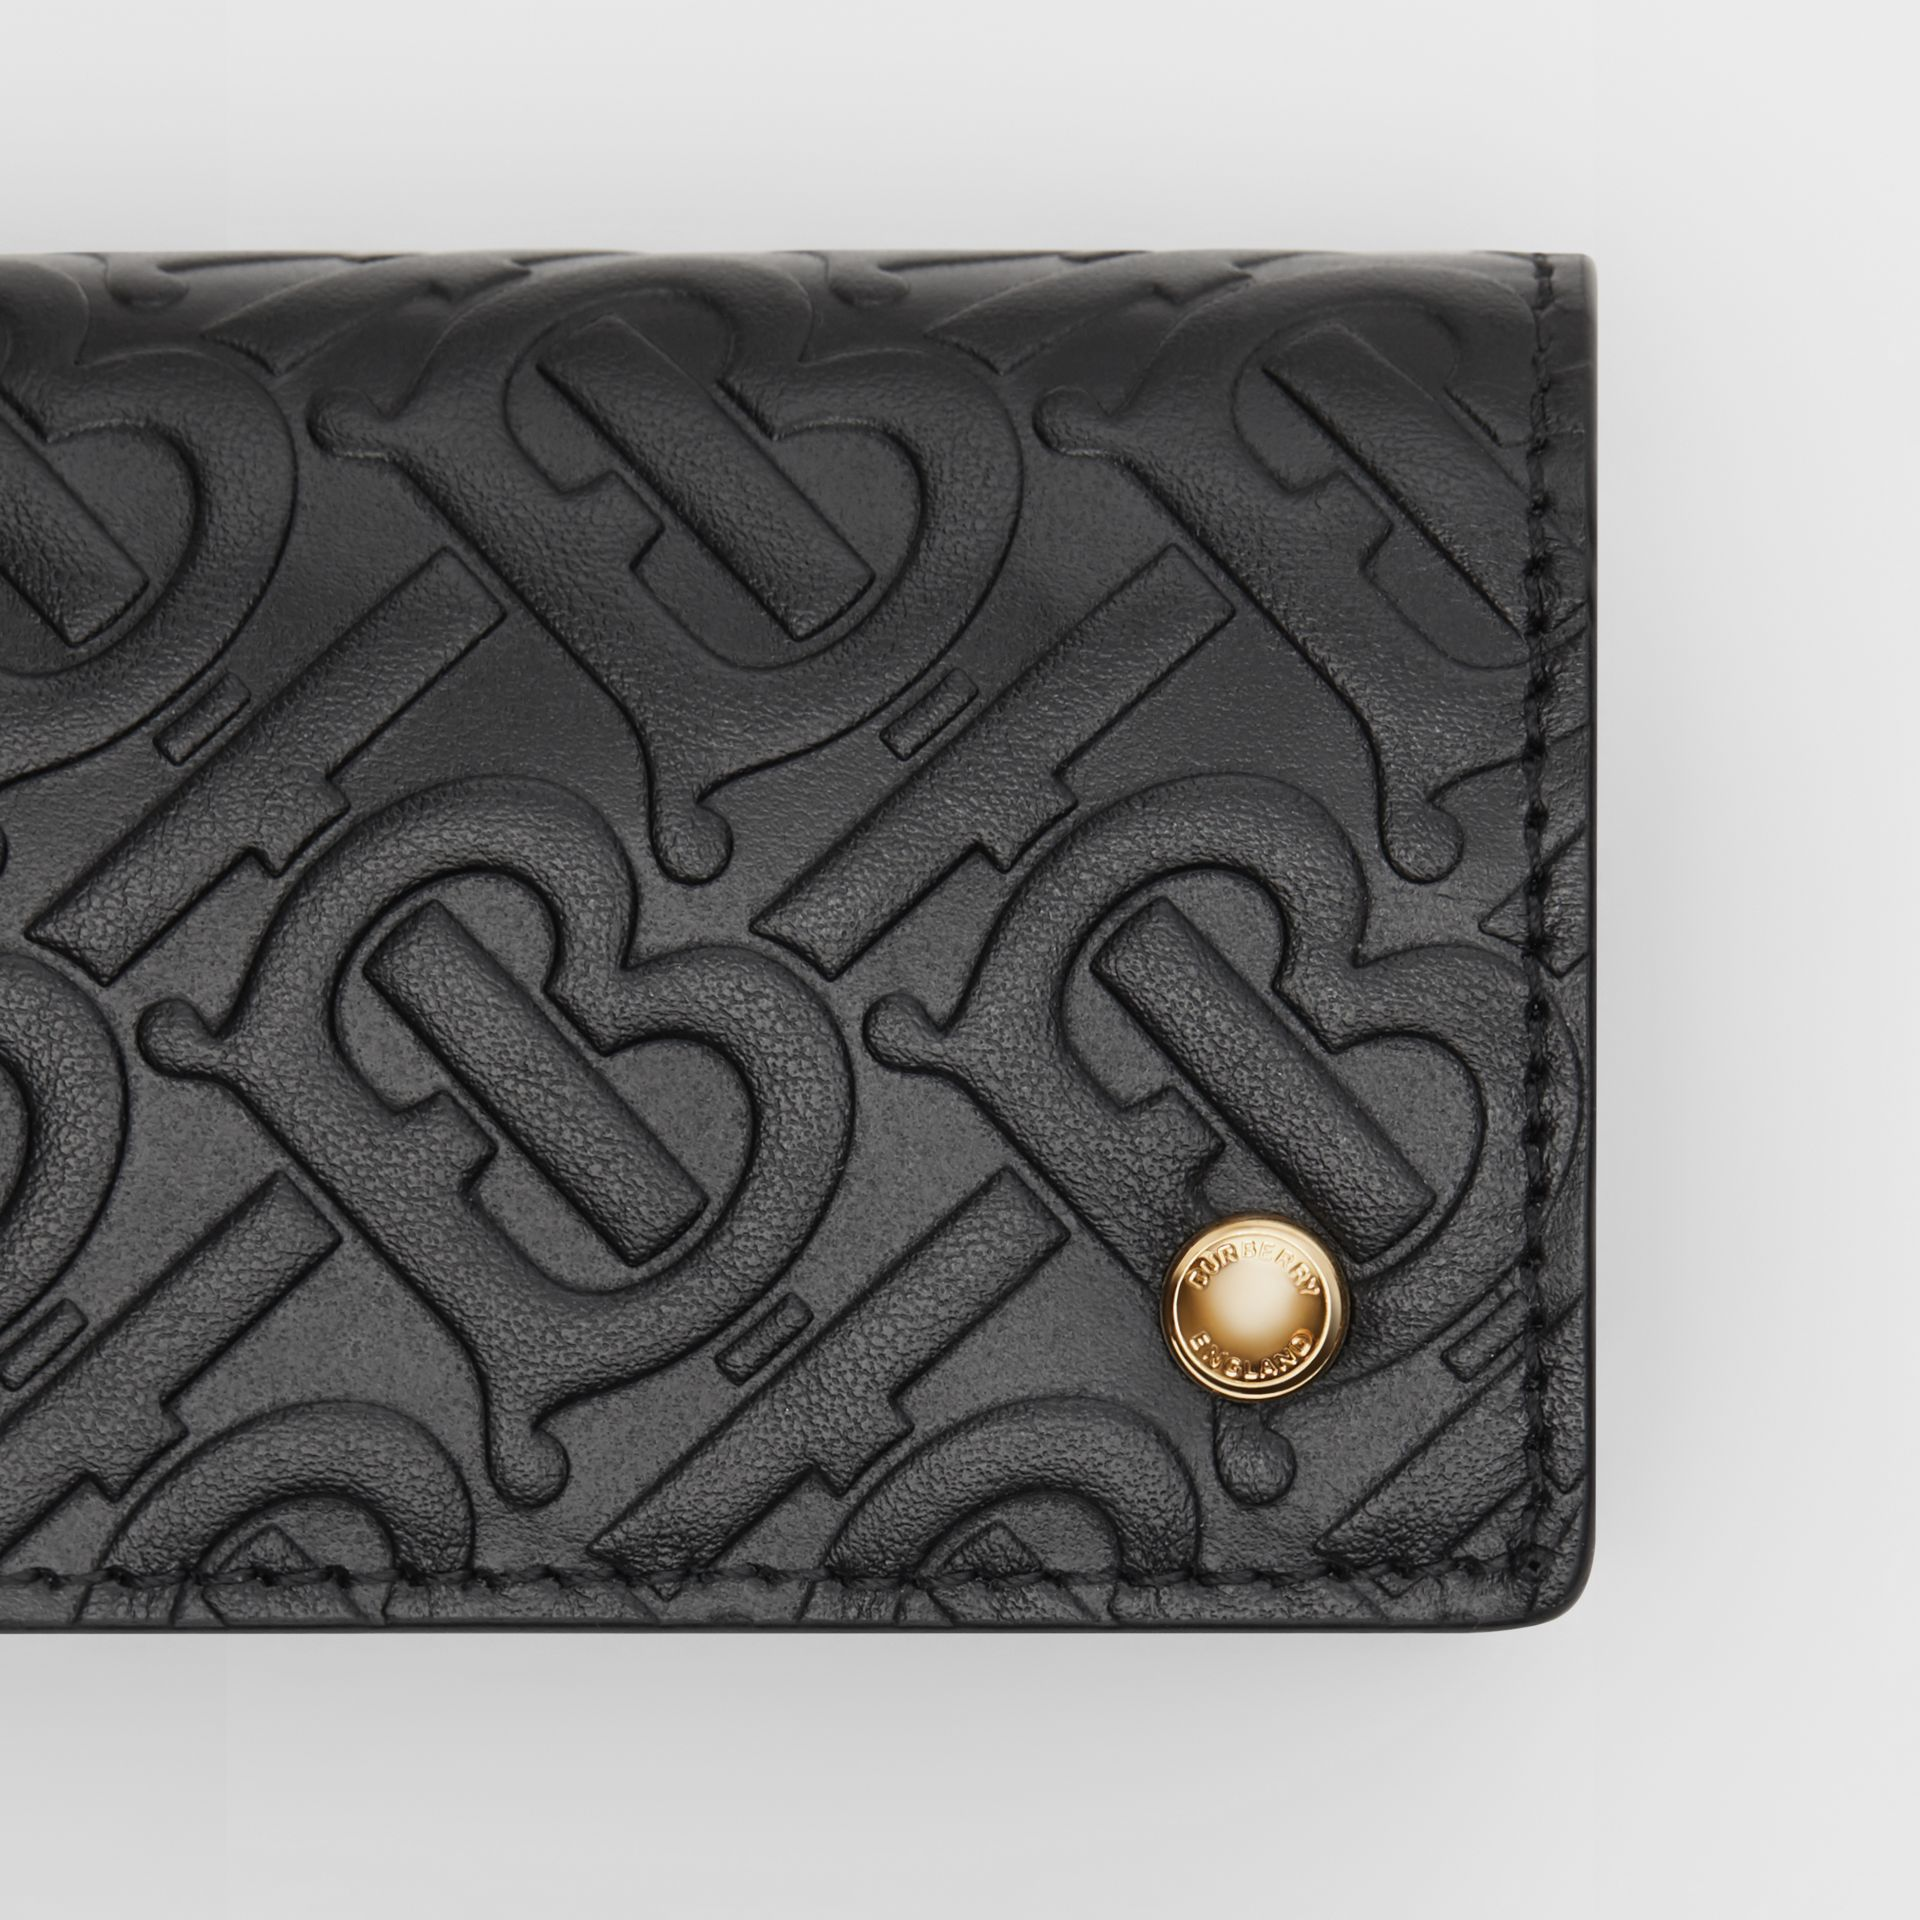 Monogram Leather Card Case in Black - Women | Burberry Singapore - gallery image 1